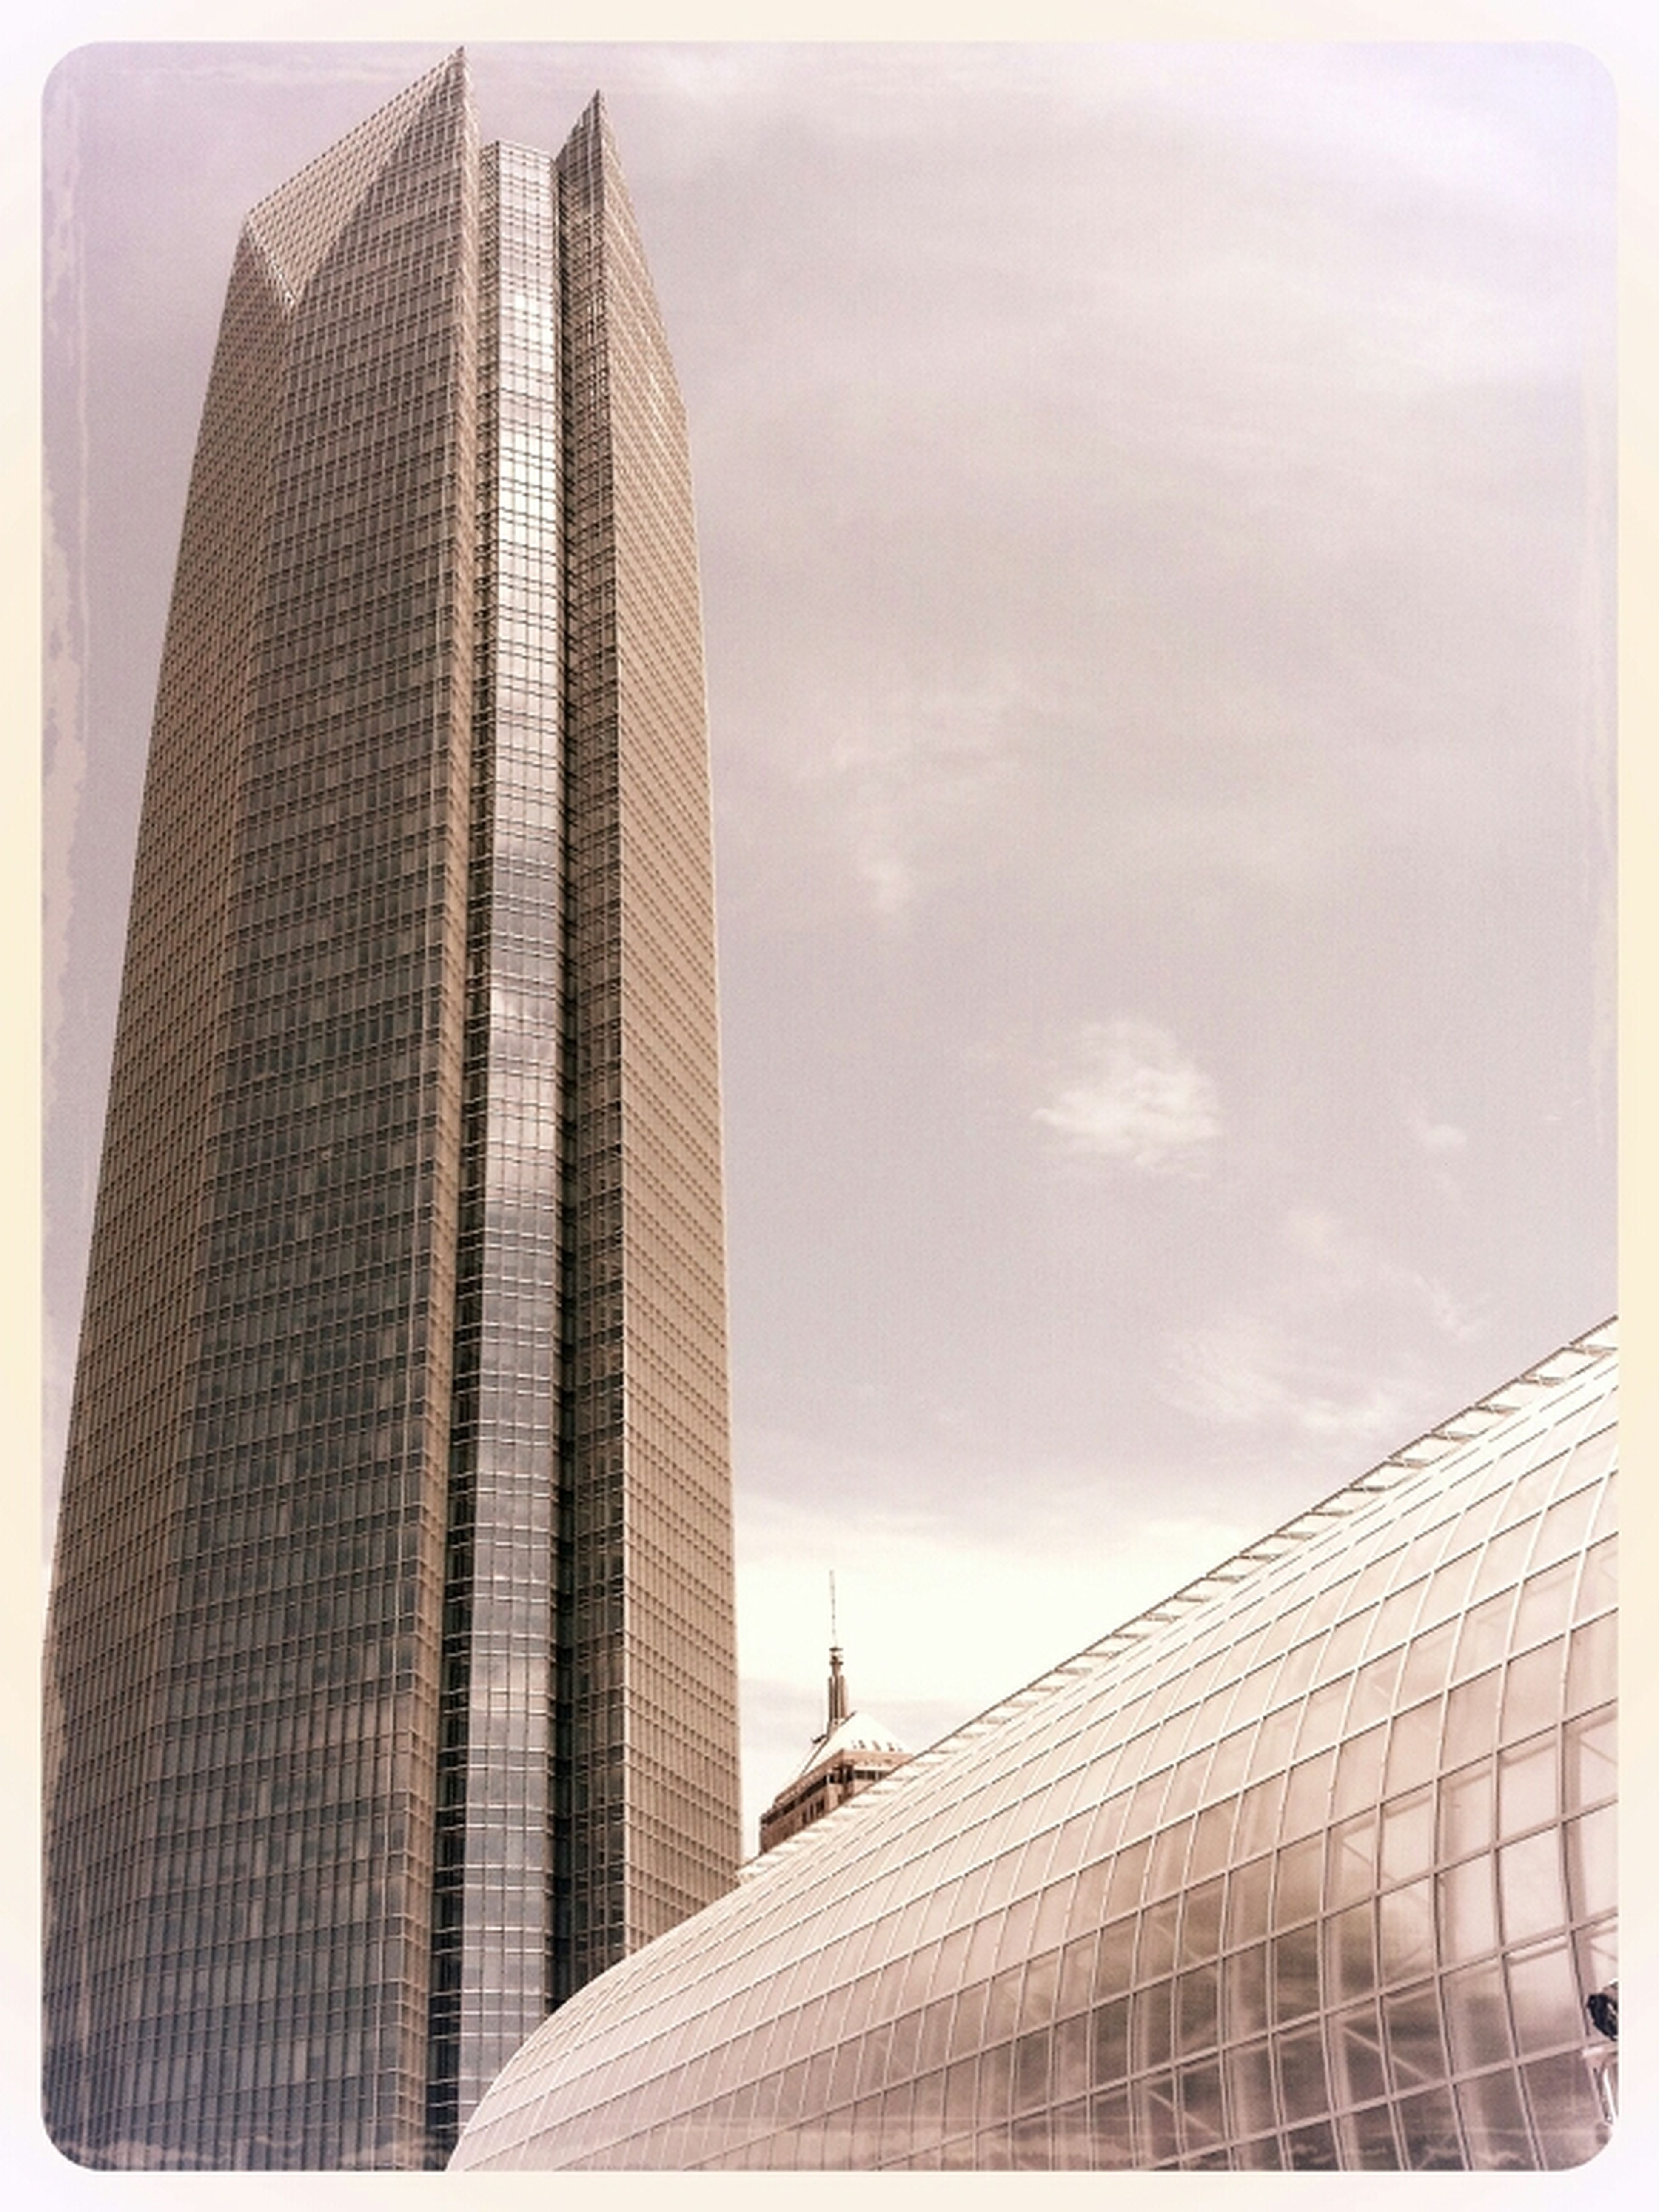 Architecture Phoneography Science Fiction